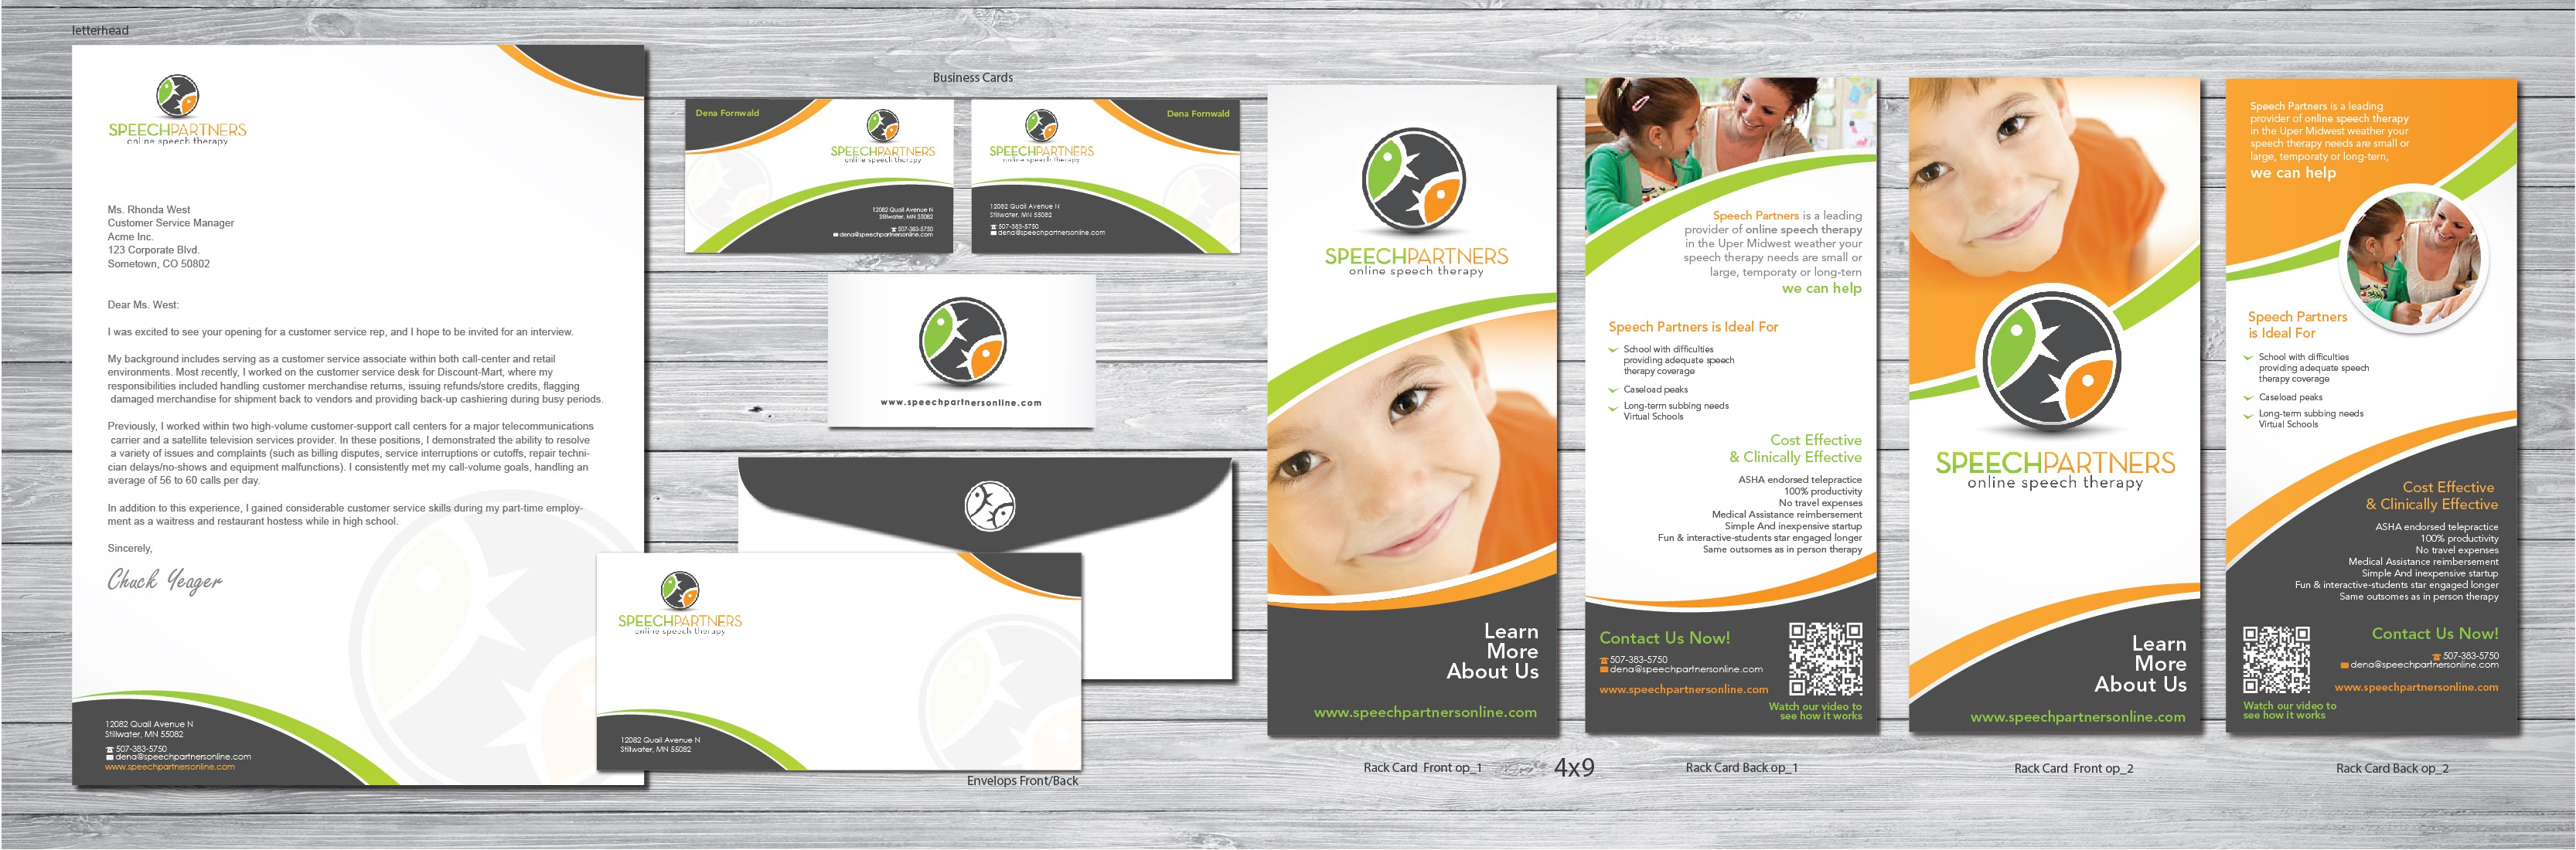 Business card, rack card, & stationery for an educational speech therapy company - Education